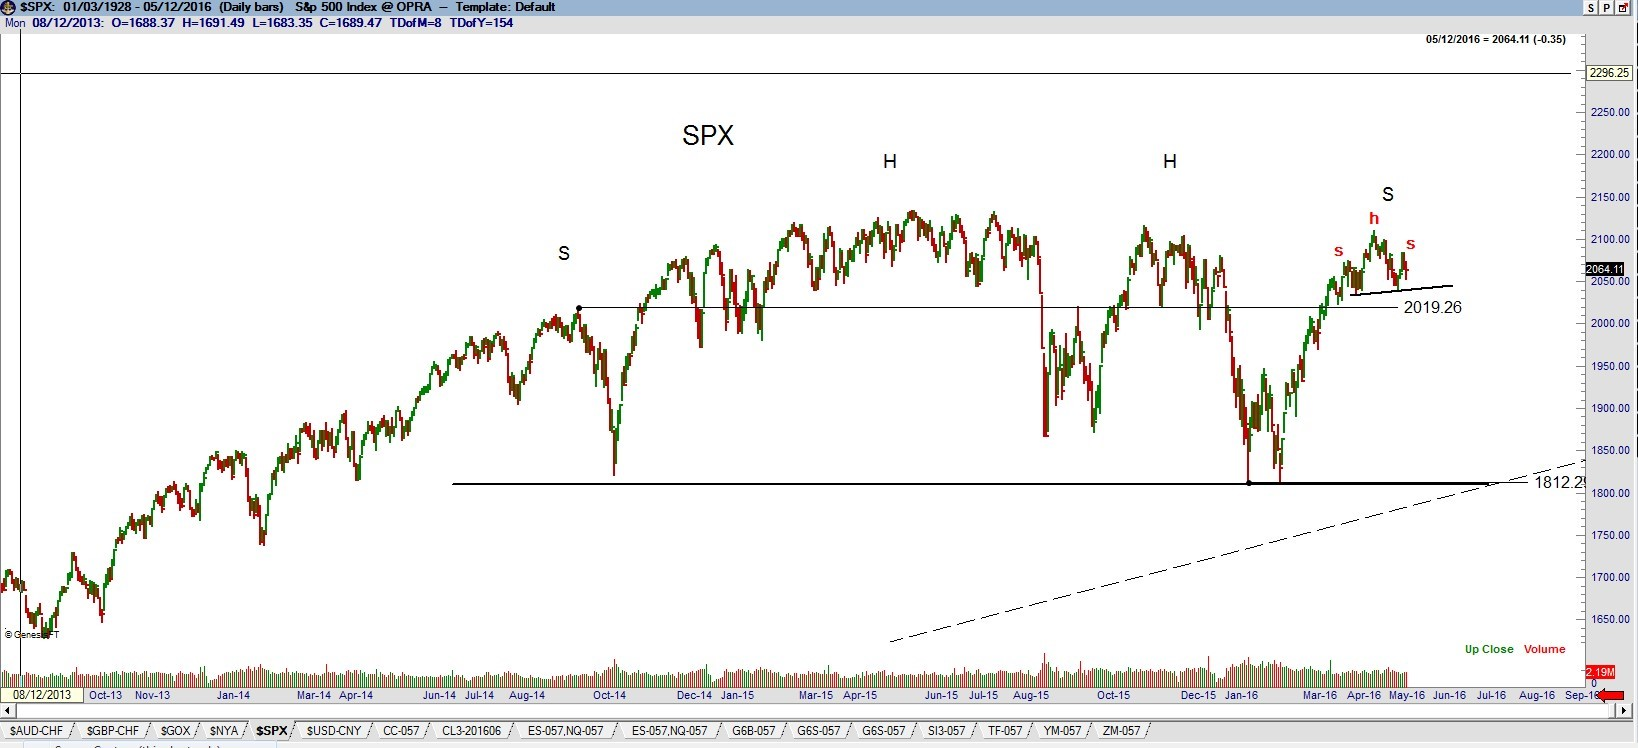 S&P 500 completed head and shoulders top - Stock market updates - Factor Trrading - Peter Brandt